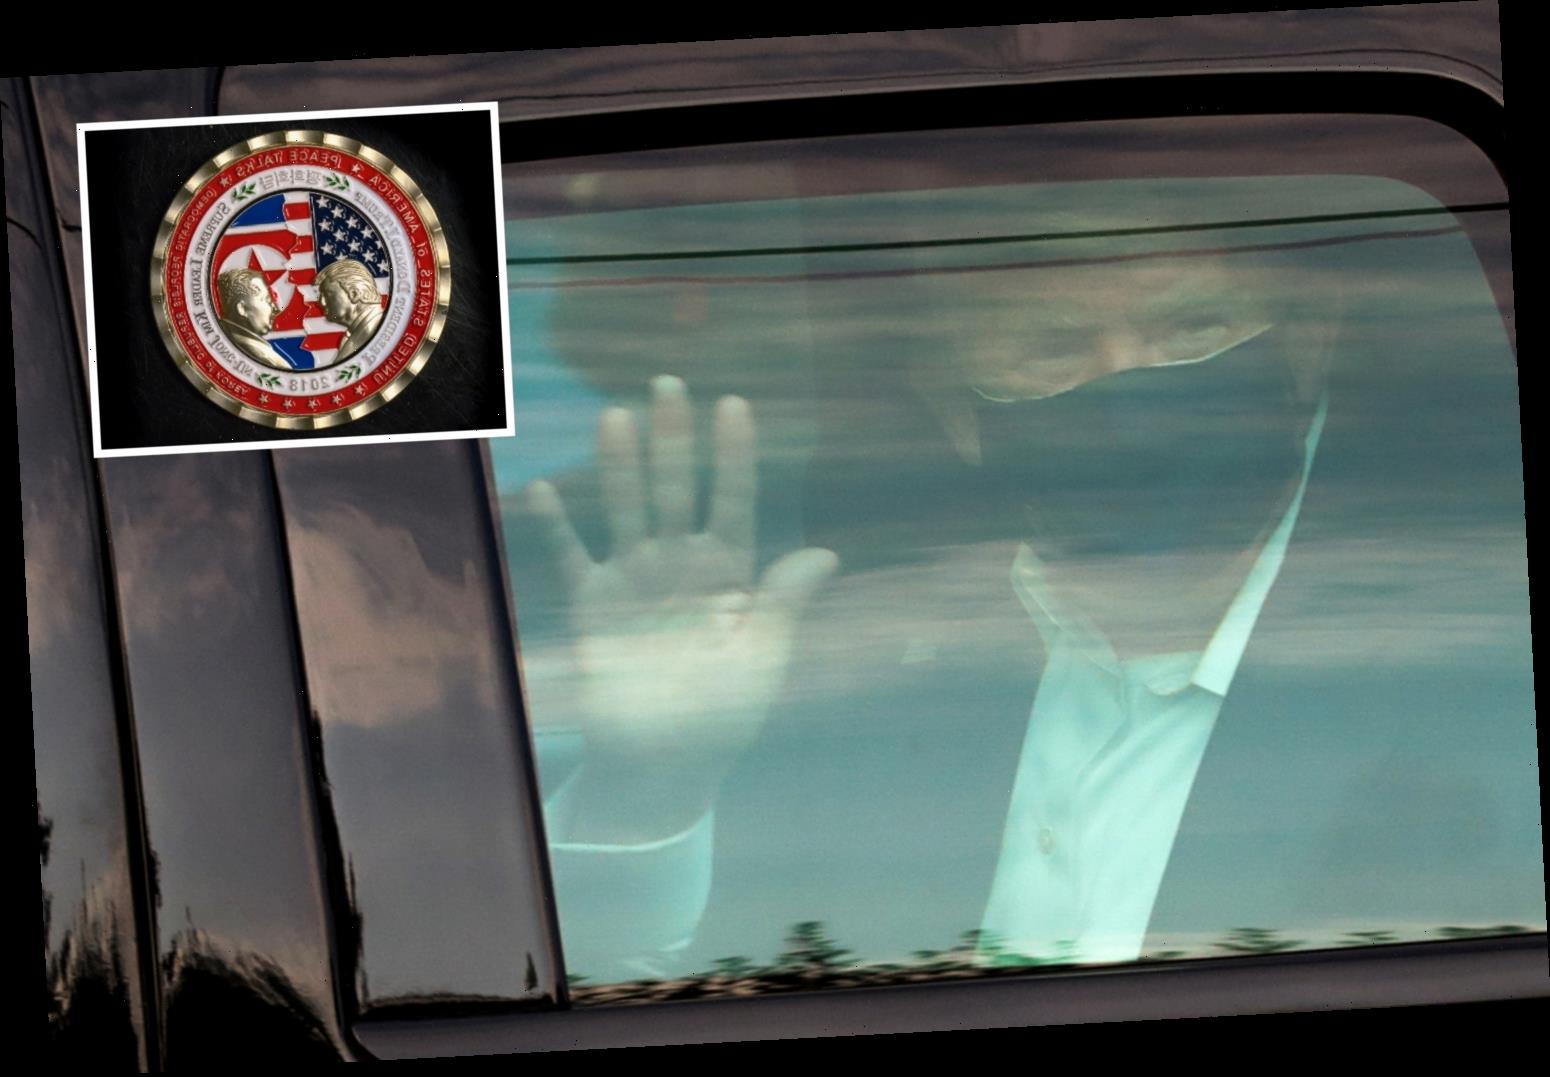 White House gift shop was ALREADY selling 'Trump defeated Covid' commemorative coins before he is released from hospital